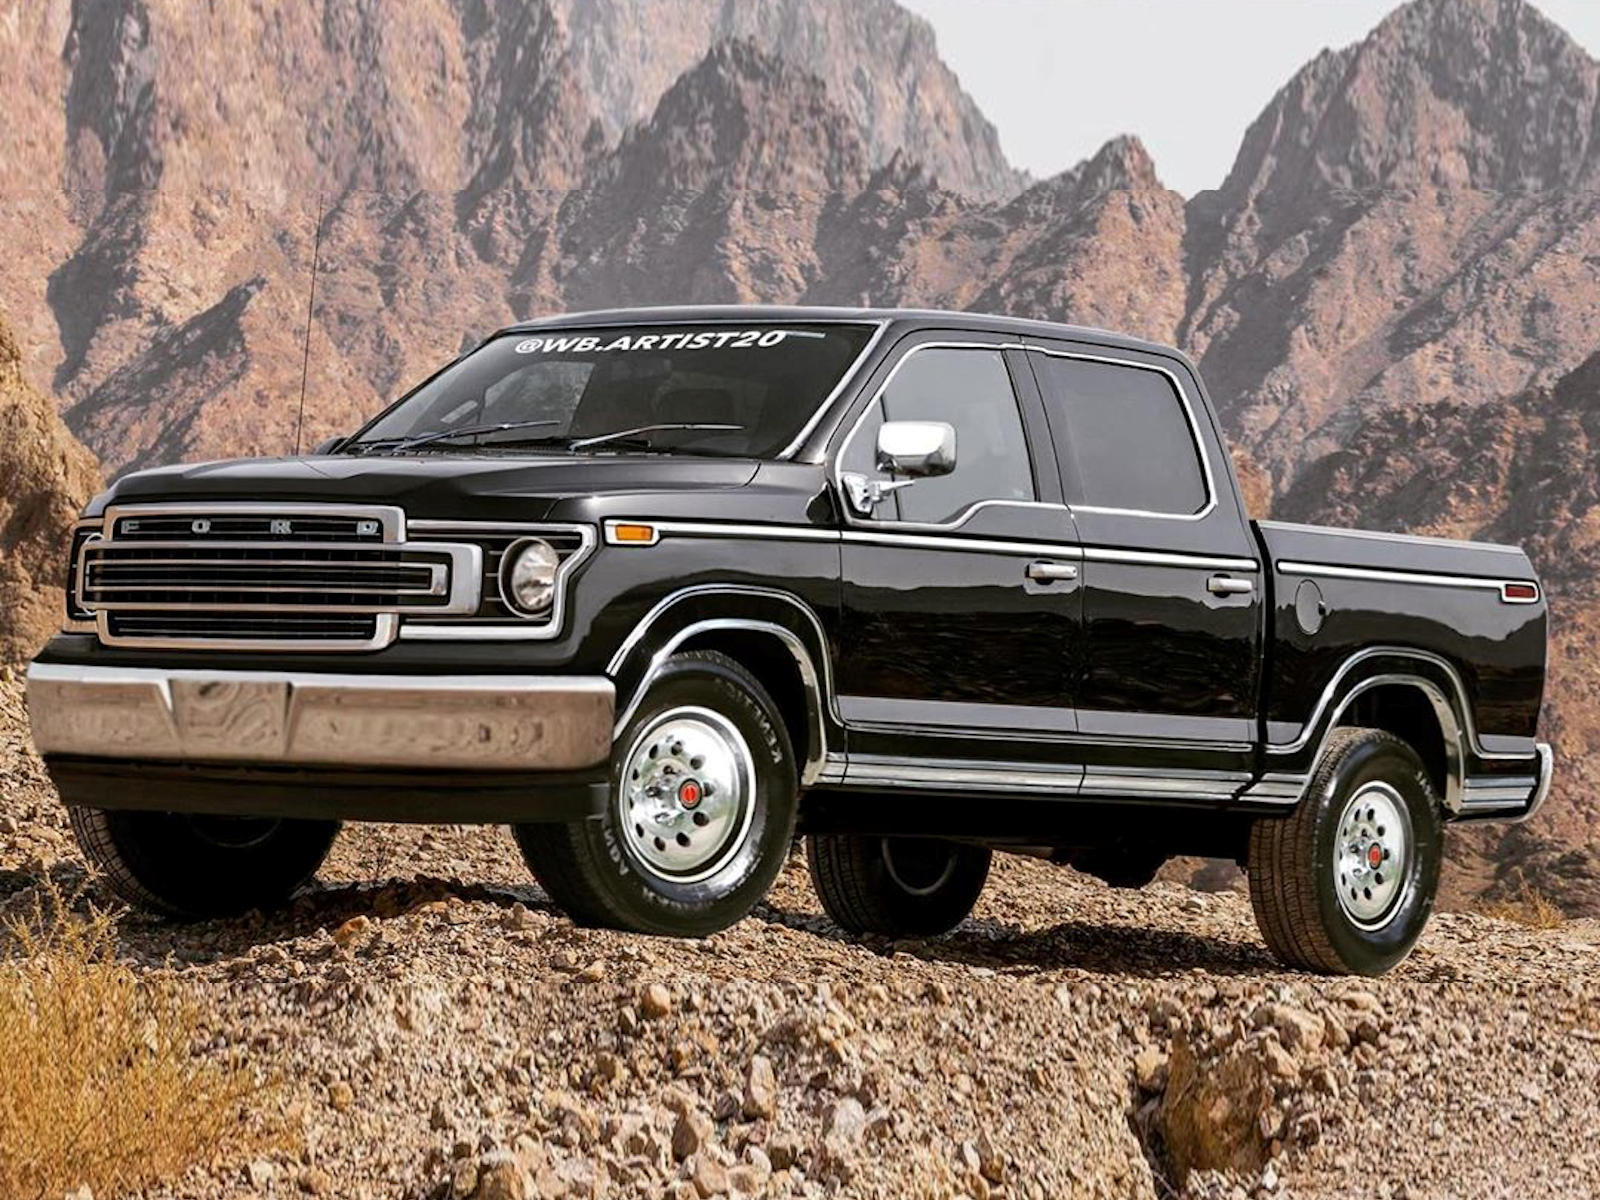 150 retro ford styling artist redesign gen reinvented carbuzz imagines wb f150online